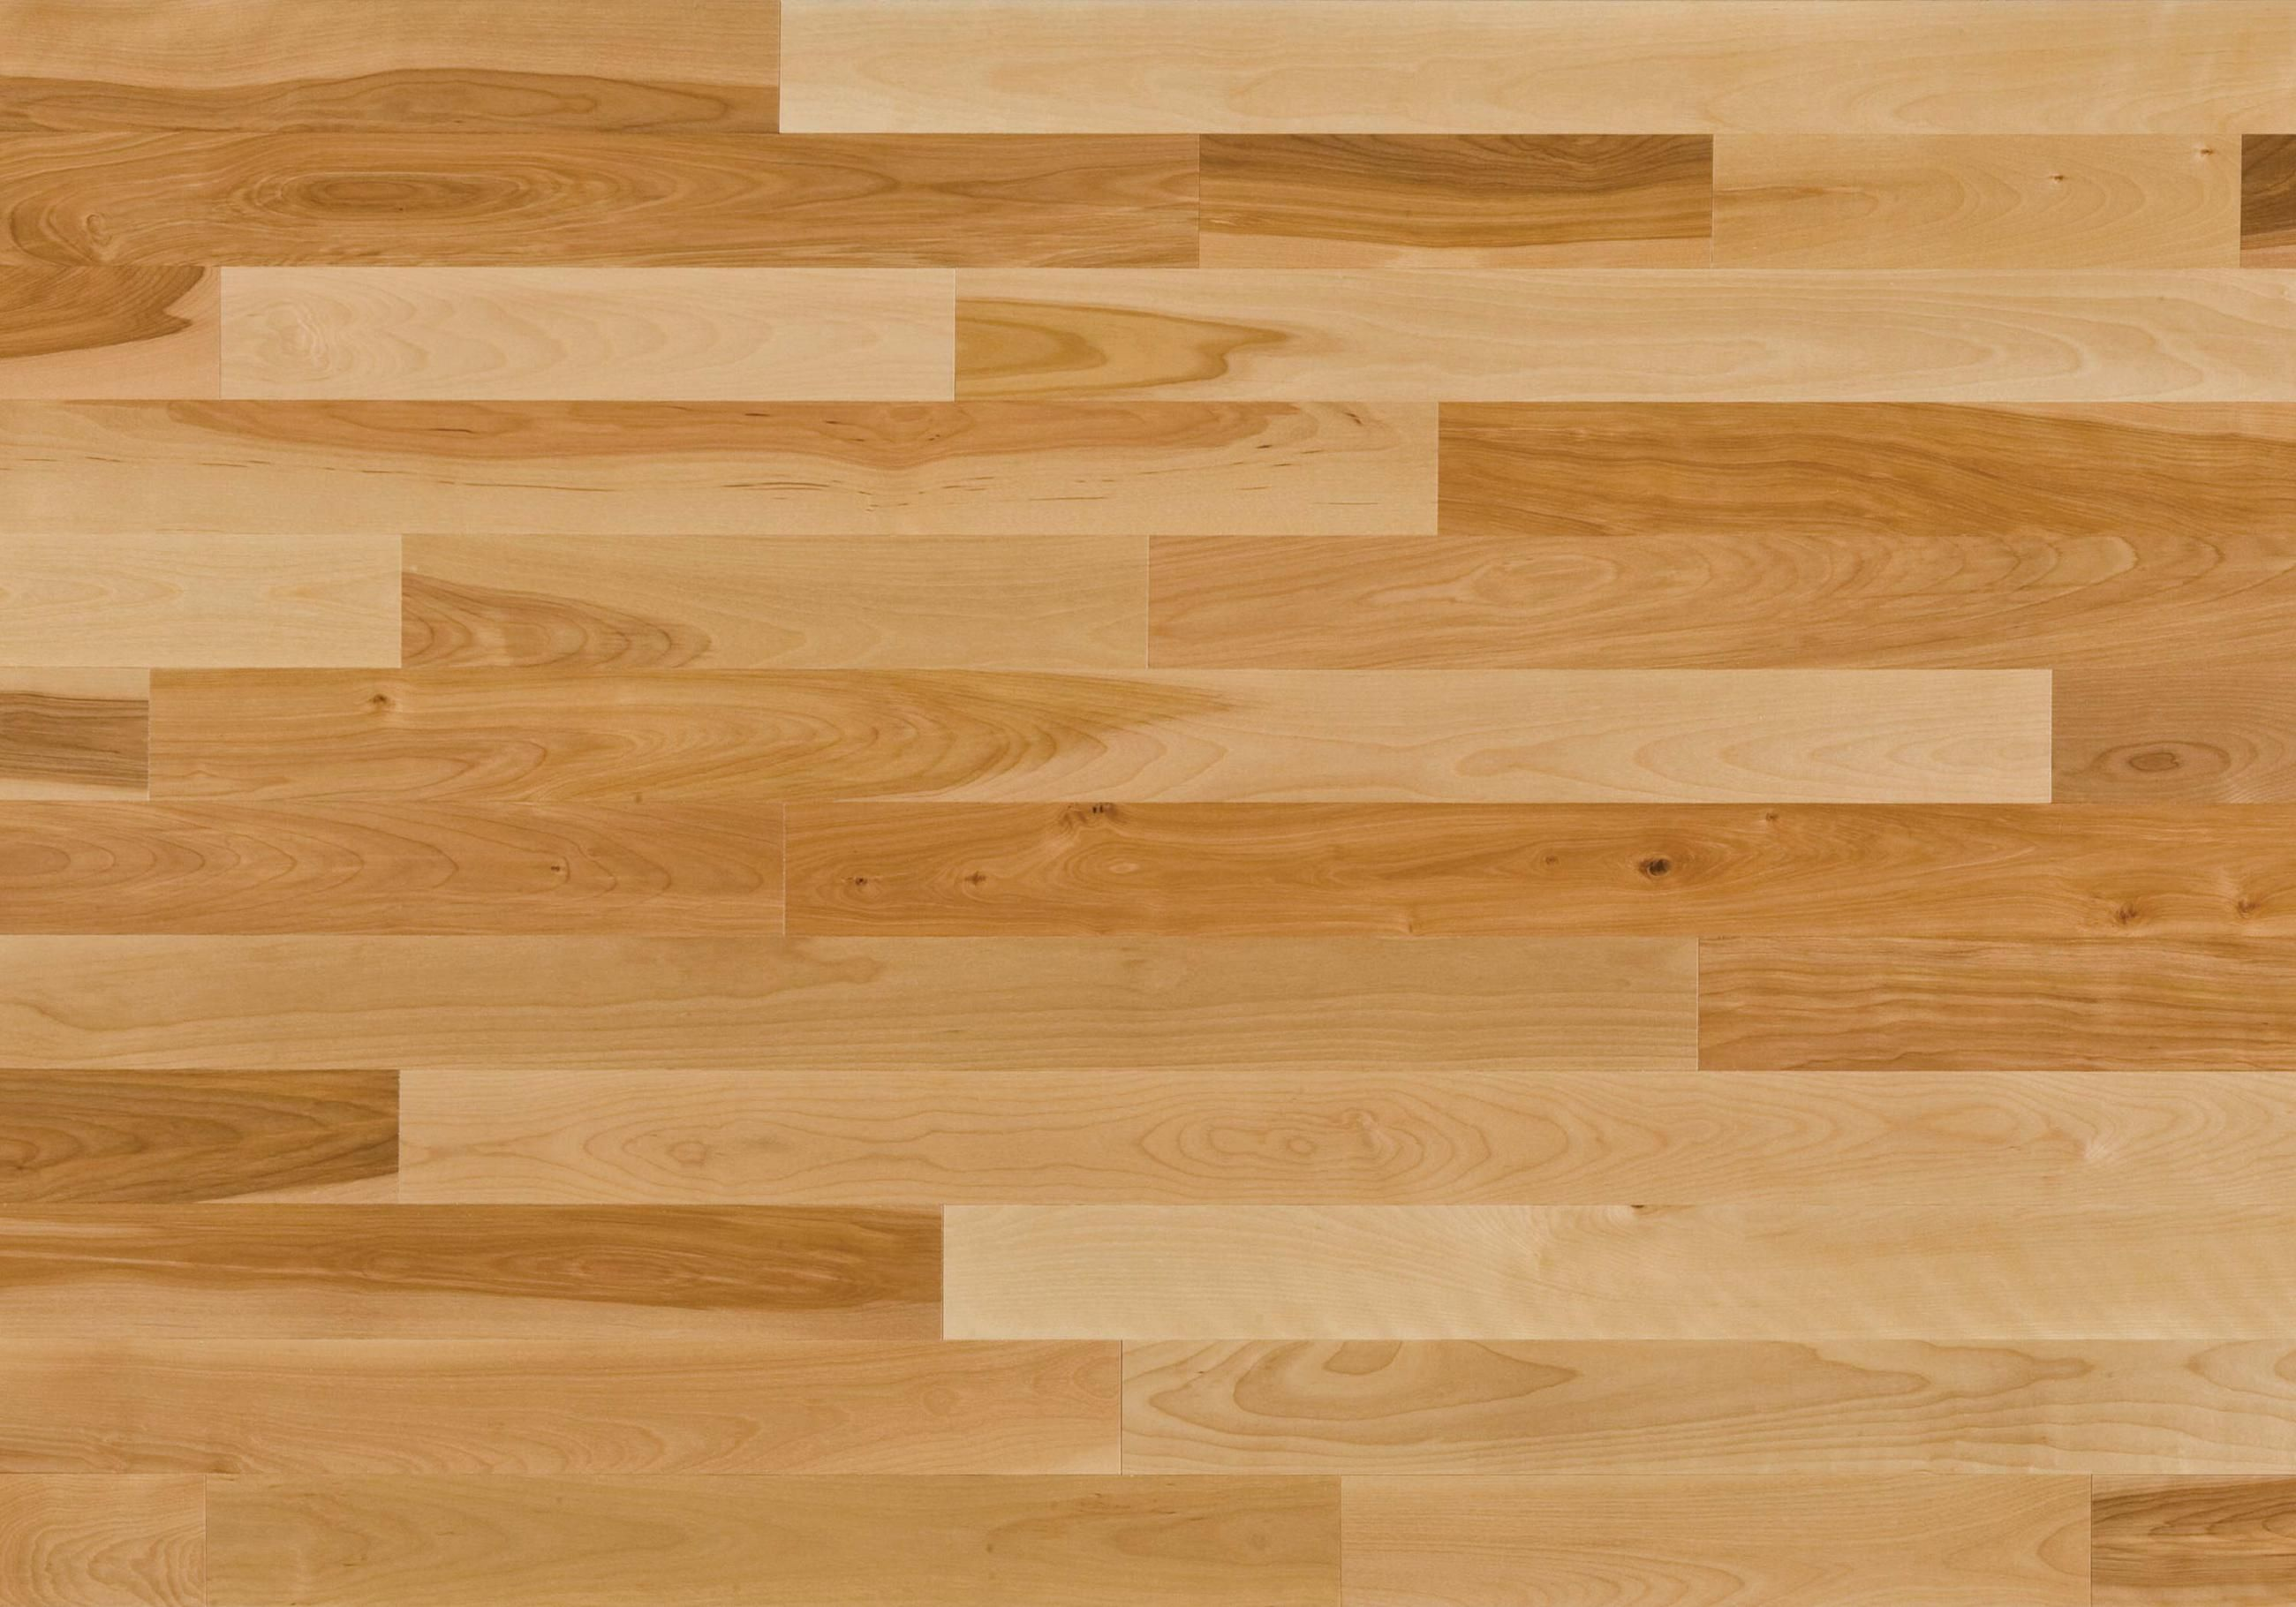 Discover Lauzon S Hardwood Flooring With Our Wide Selection Of Naturals This Magnific Yellow Birch From Ambiance Collection Will Enhance Your